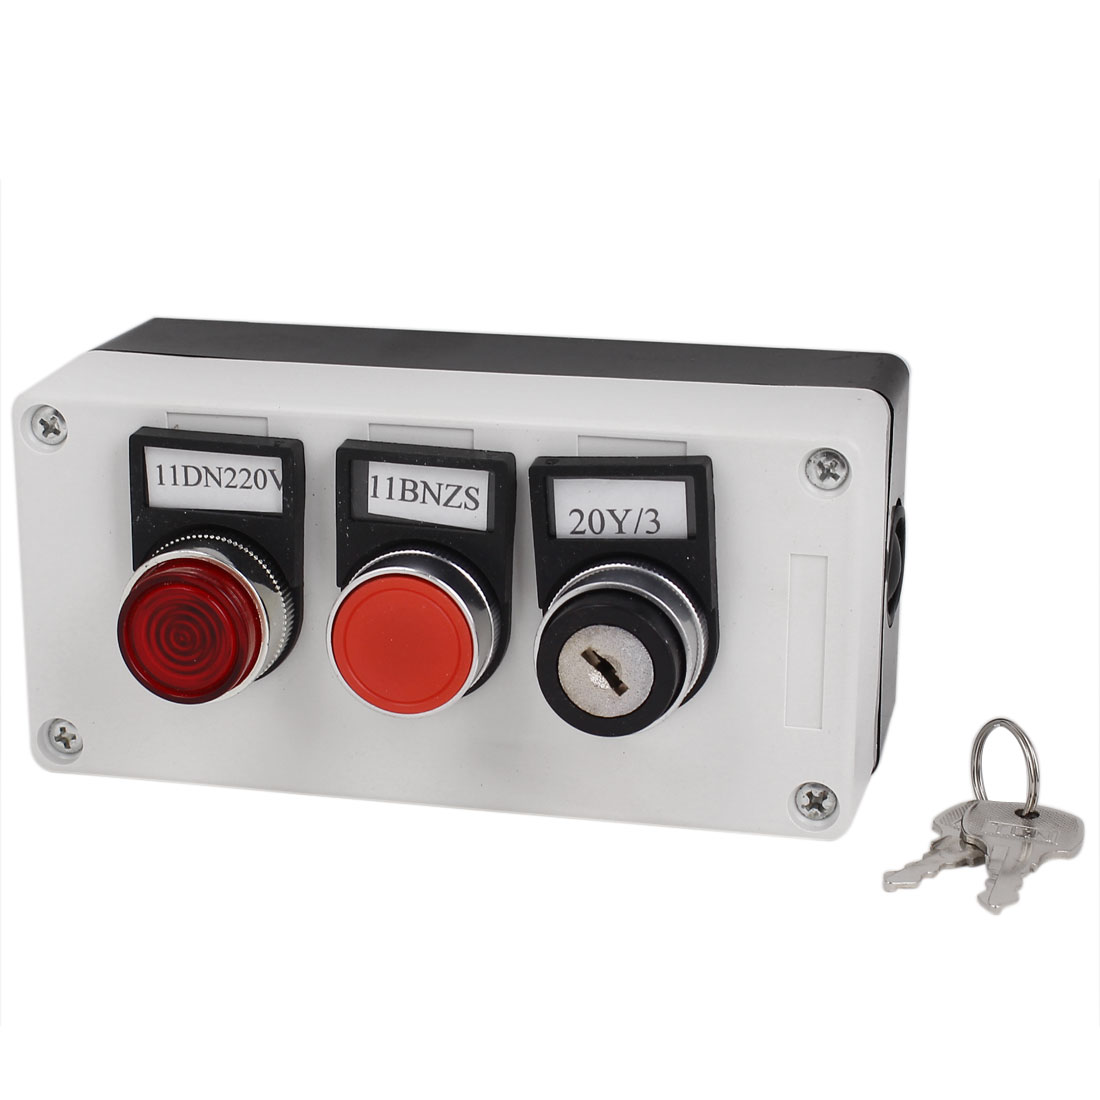 3 in 1 Key Locking Red Light Push Button Switch Station